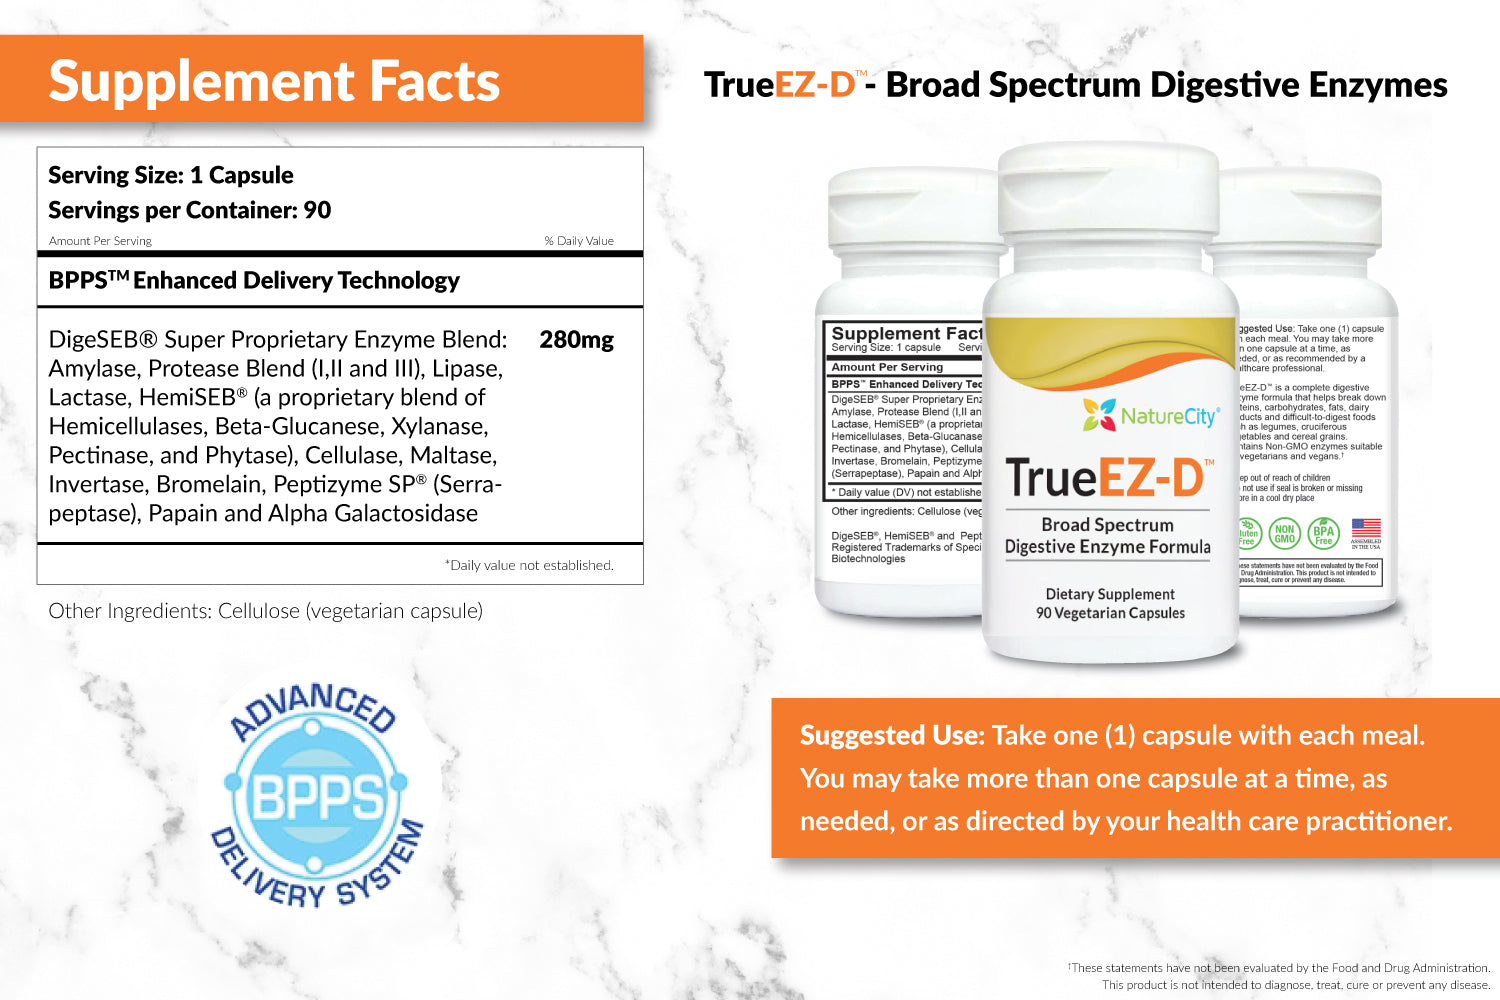 TrueEZ-D Digestive Enzymes Supplement Facts and Suggested Uses